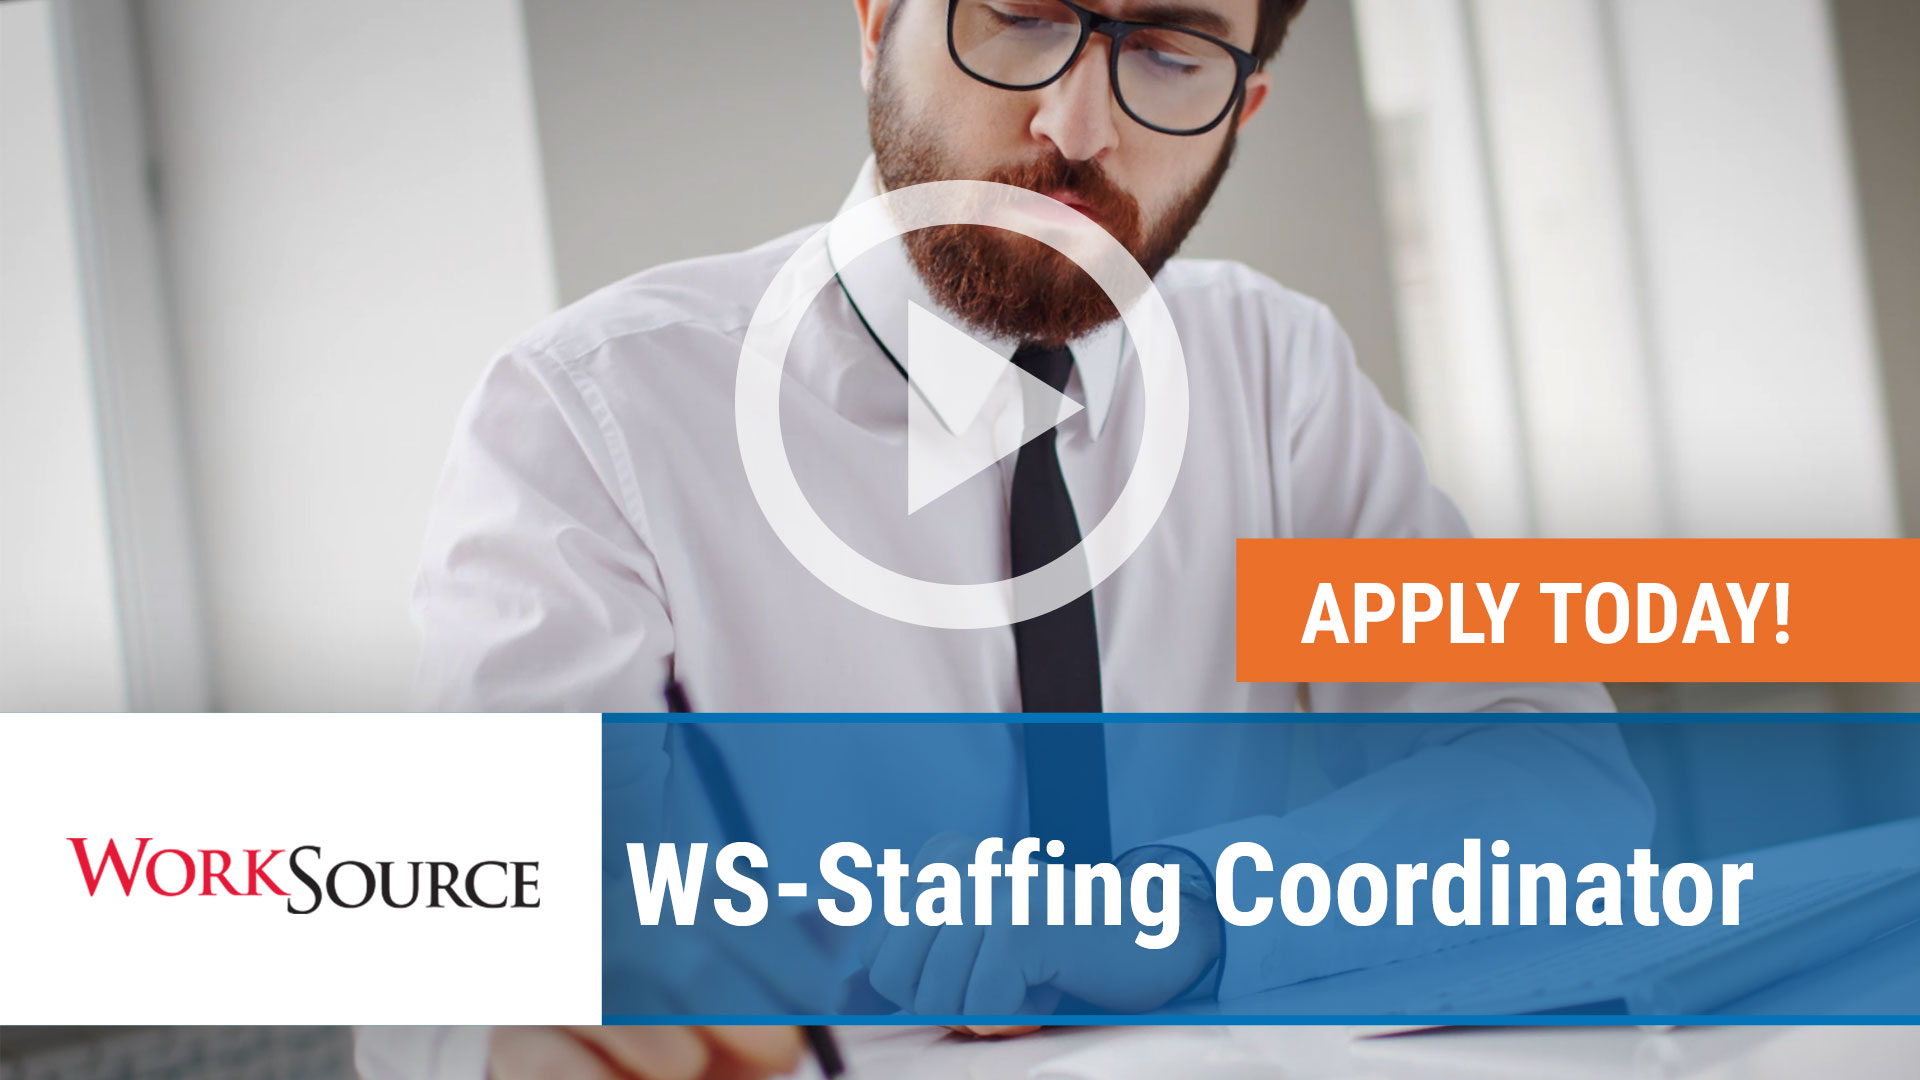 Watch our careers video for available job opening WS Staffing Coordinator in Bentonville, Arkansas